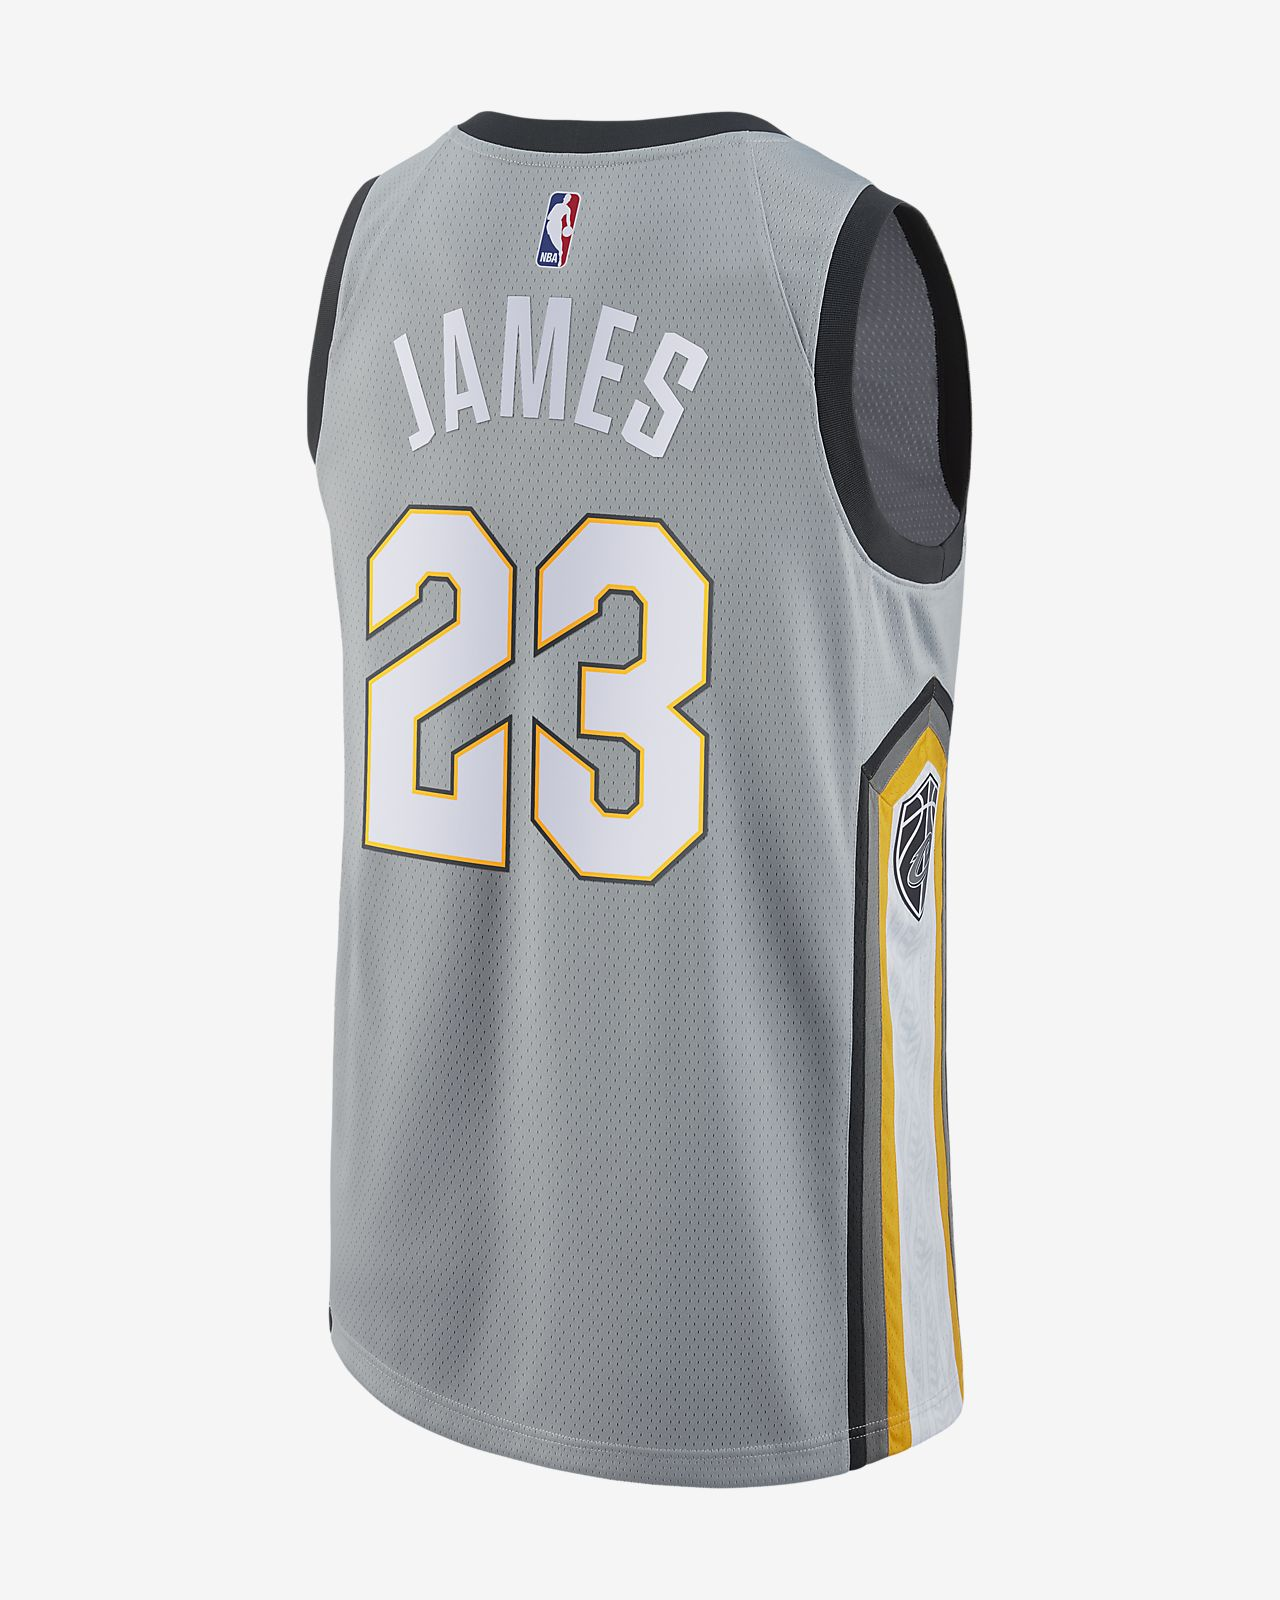 ... lebron james city edition swingman jersey cleveland cavaliers mens nike  nba connected jersey ea30ac829